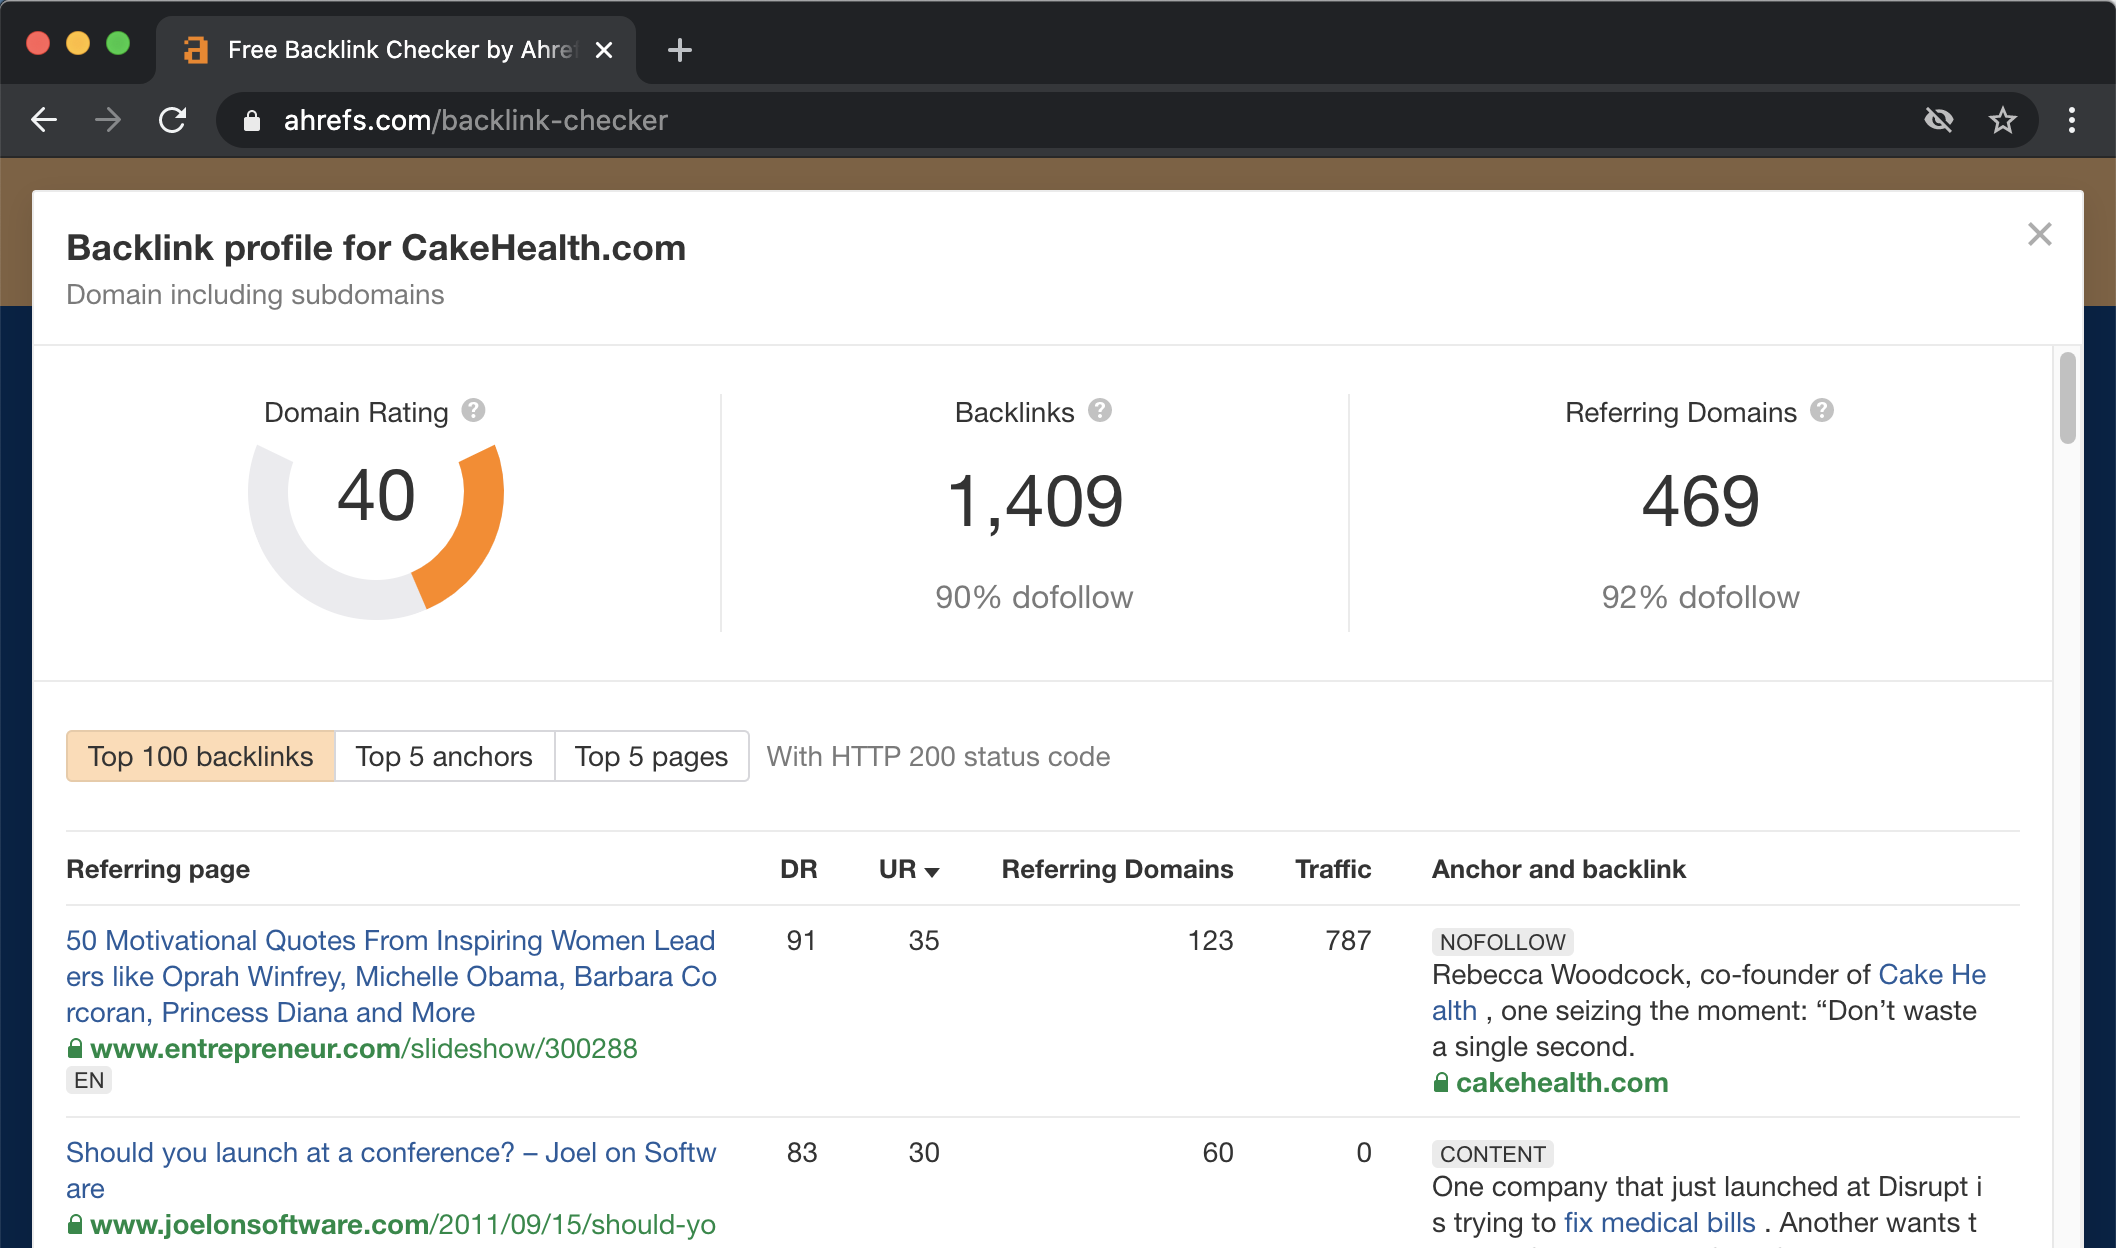 Ahrefs for CakeHealth.com